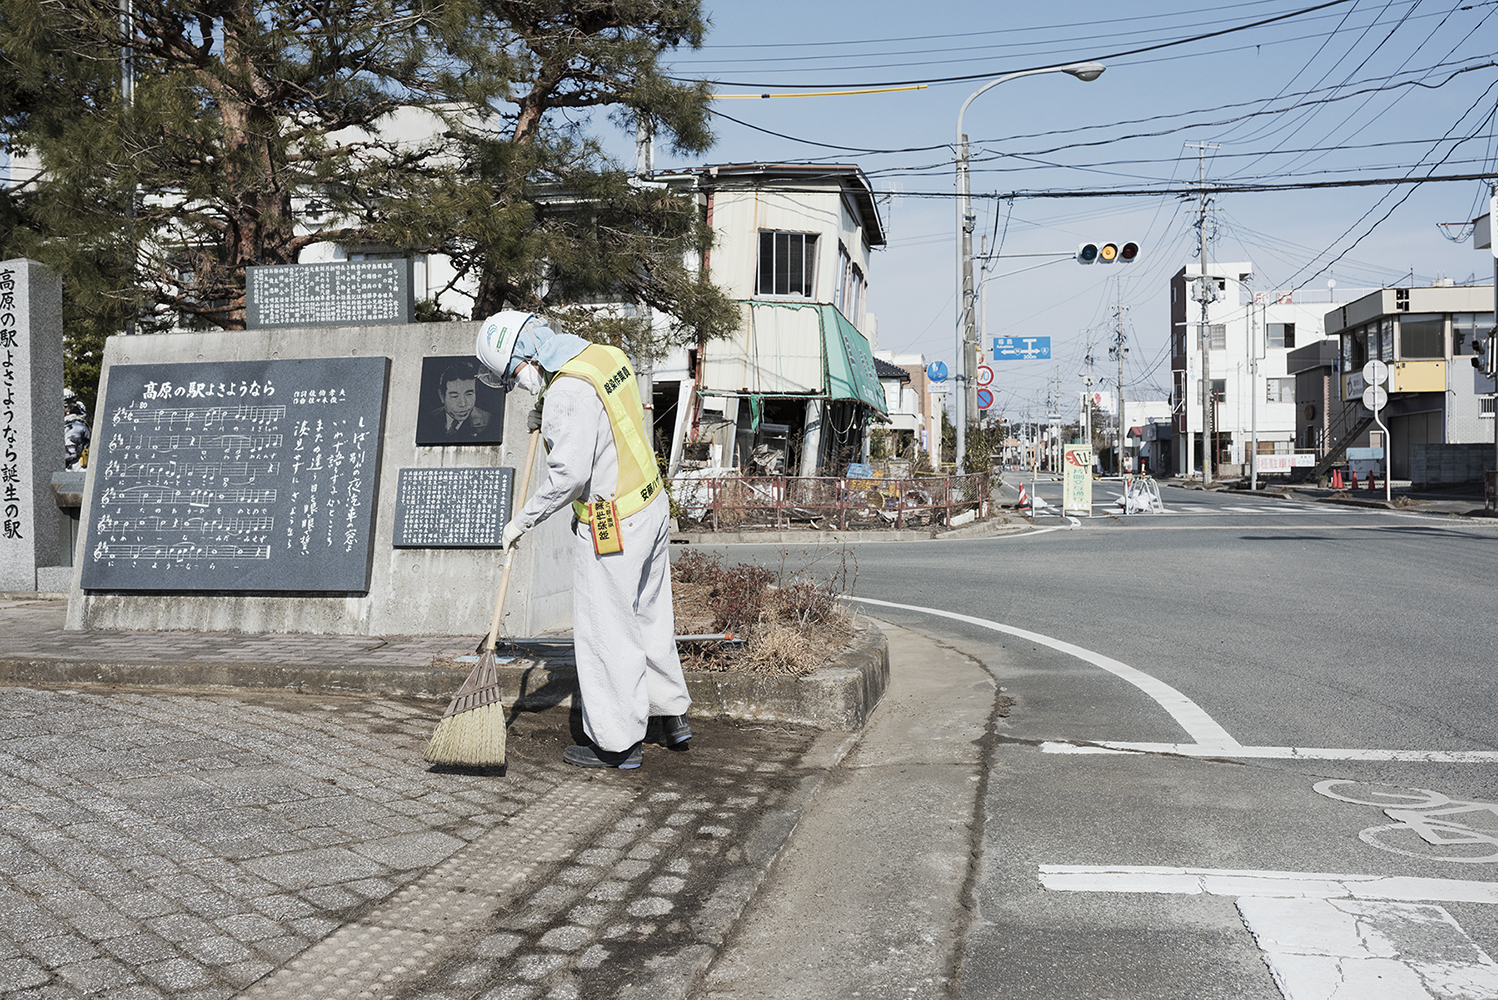 Fukushima radiation cleanup worker in the abandoned city Namie, located between 5-15 km north of the Fukushima Daiichi Nuclear Power Plant. The city had a population of 18000 people that was evacuated after the disaster. The evacuation area around Fukushima Daiichi is divided in 3 zones. Namie is now on the border of zone 2 and the highest zone 3 where people are not allowed to move back for a long time. Zone 2 is the area that is being prepared for people to return to, as early as 2017 when evacuated citizens will loose their right to the limited compensation they are now receiving. Even after decontamination, most of the area remains dangerously radioactive.According to Greenpeace, it is unacceptable to force the population to return to an area that is still significantly contaminated, even after cleaned up.